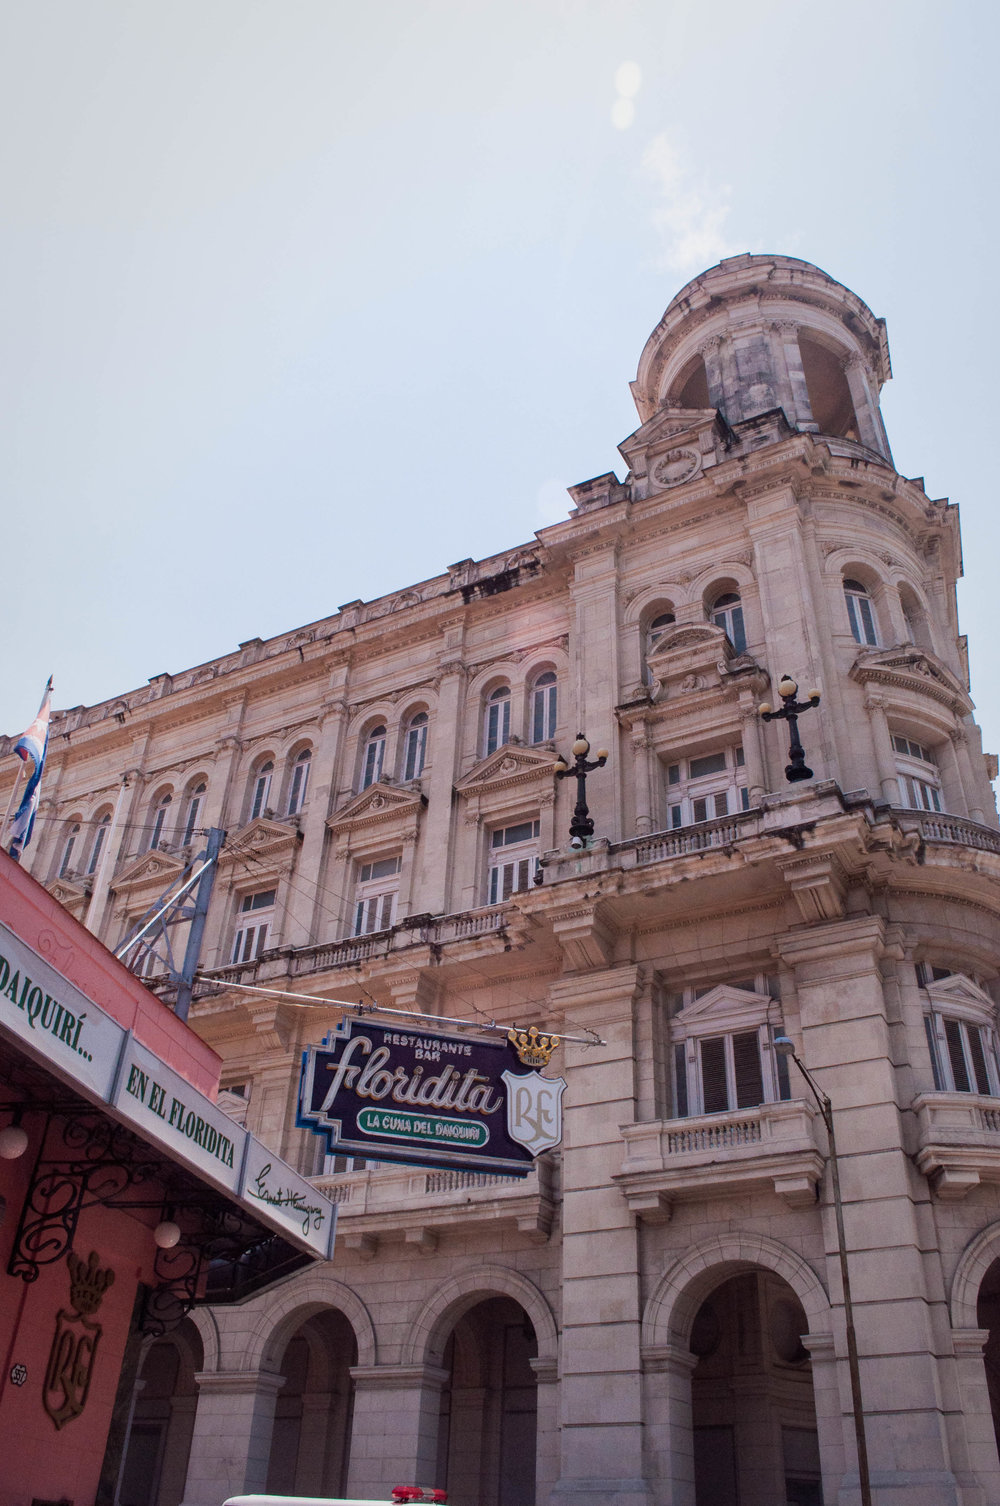 Old pink colonial building in La Havana with La Floridita sign